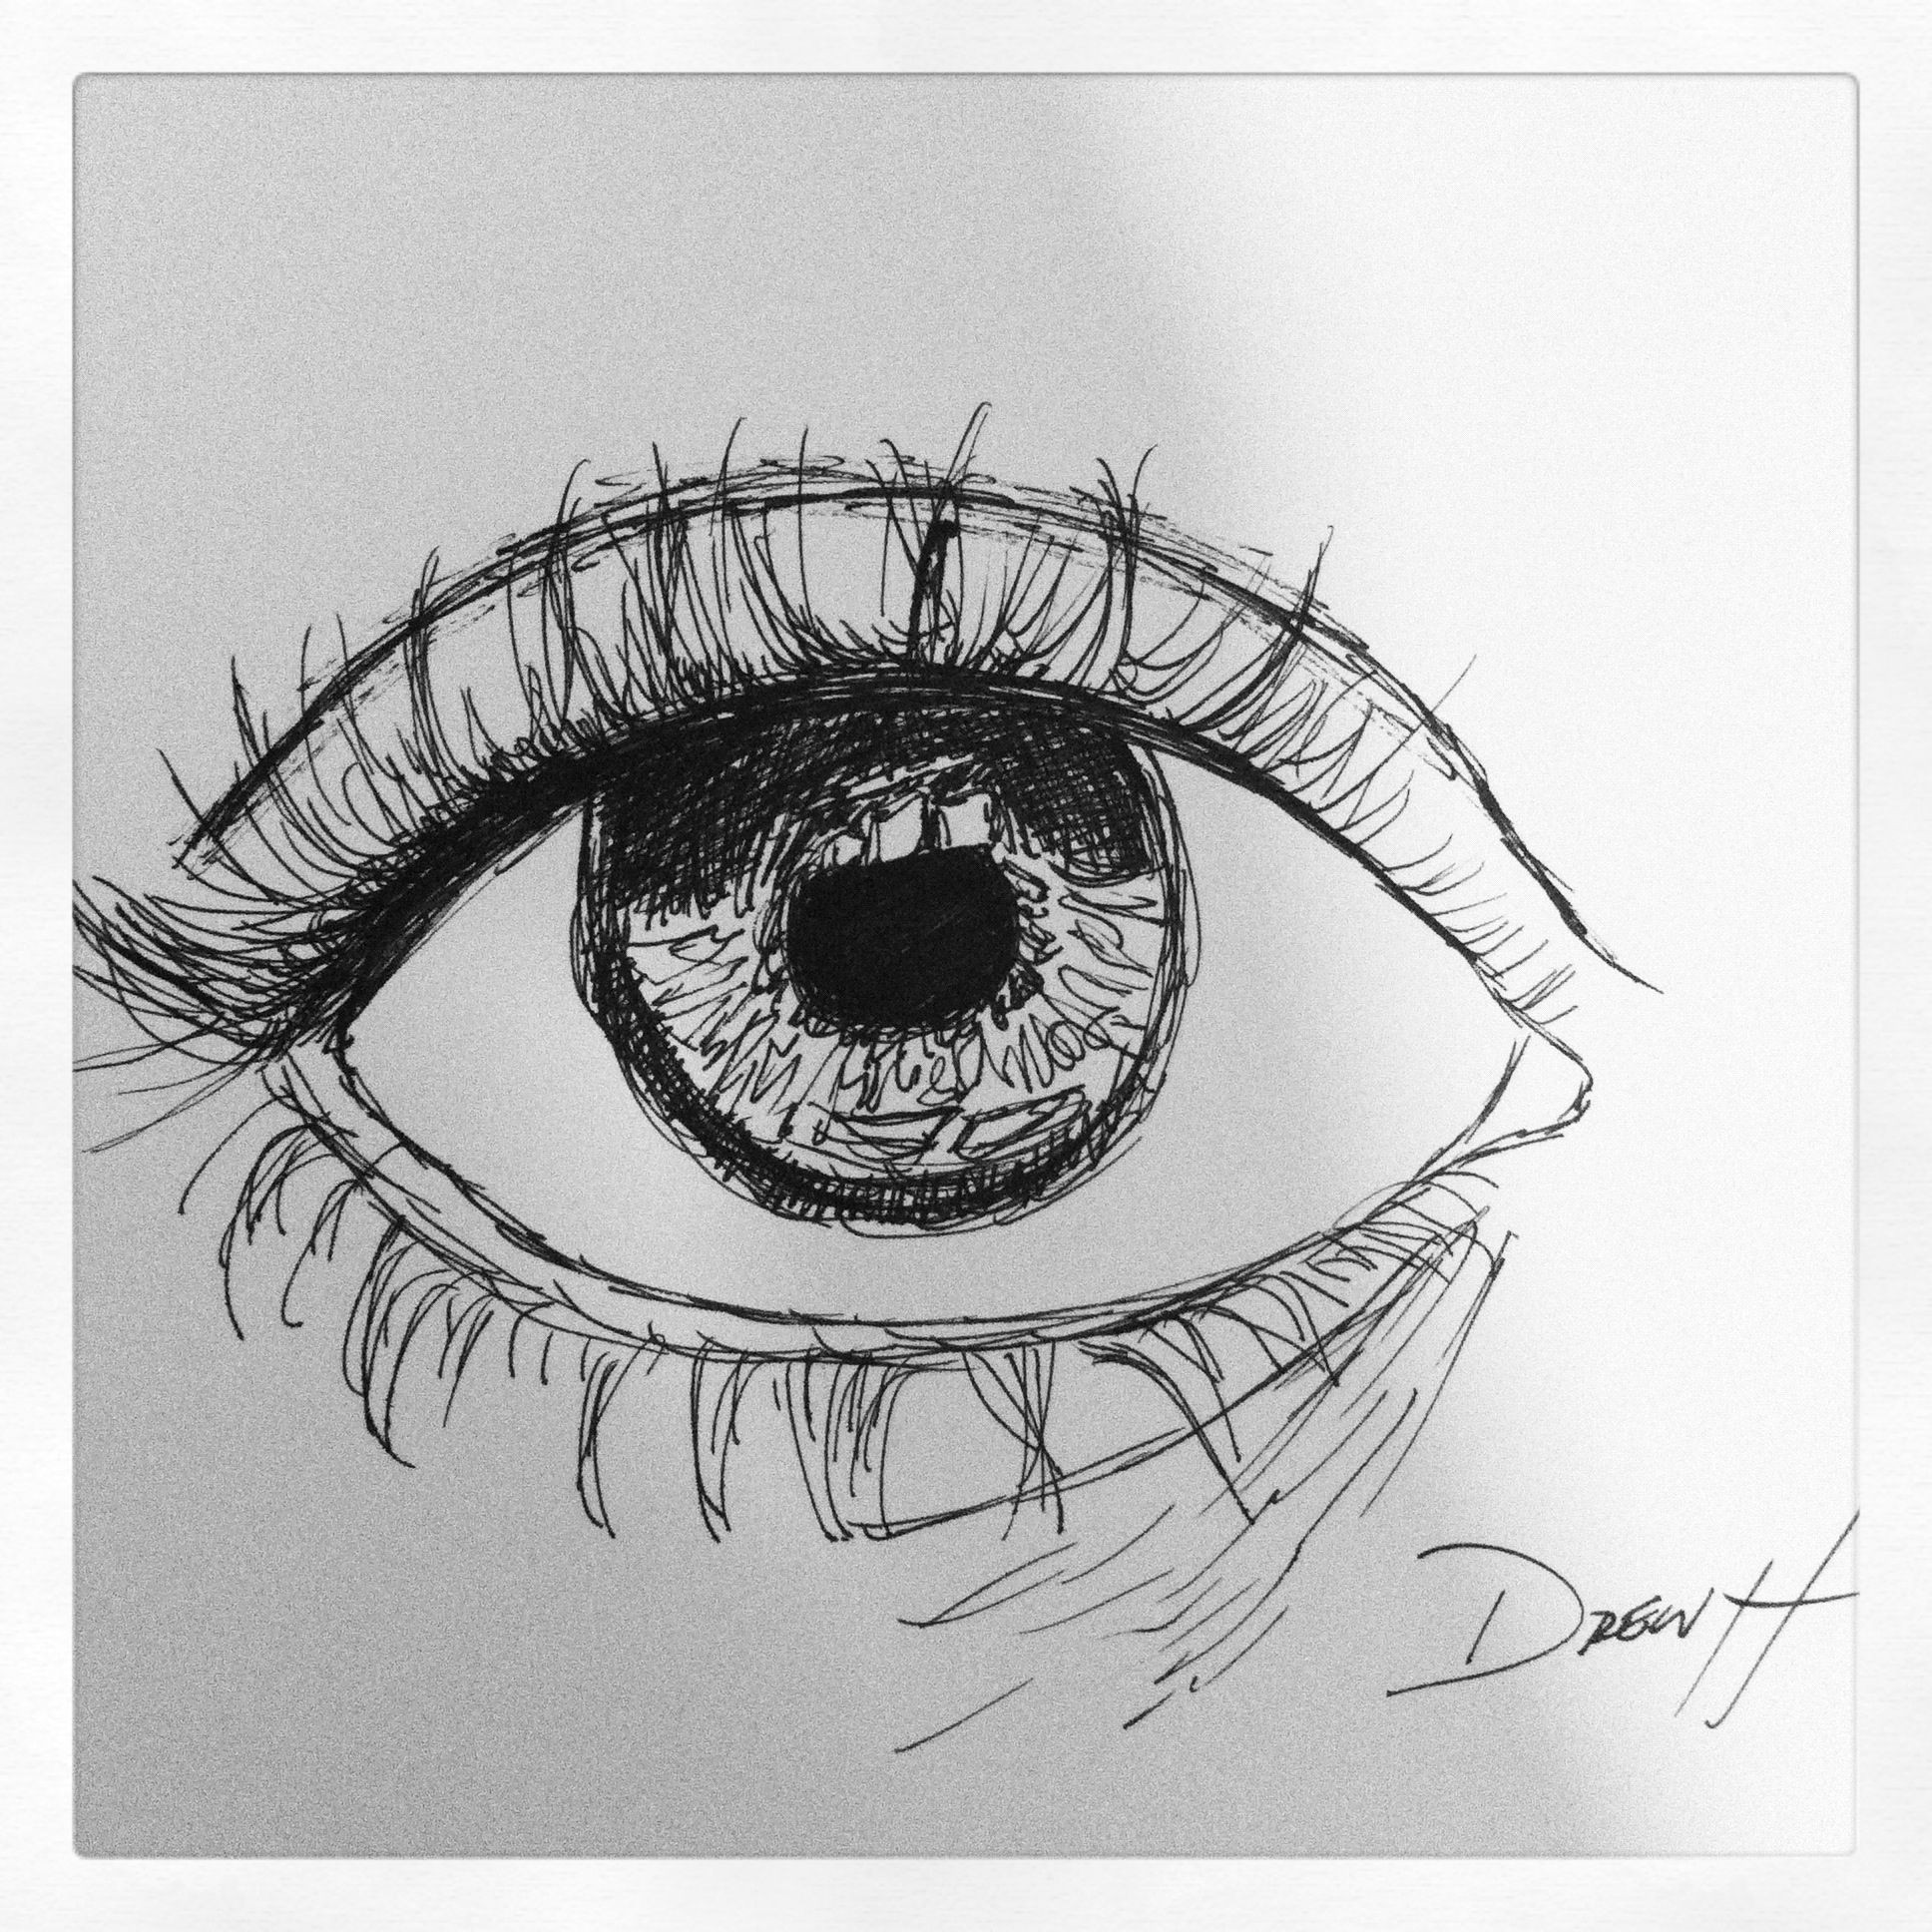 Image Of Drawing Of An Eye Ink Pen Sketch Eye Art In 2019 Drawings Ink Pen Drawings Pen